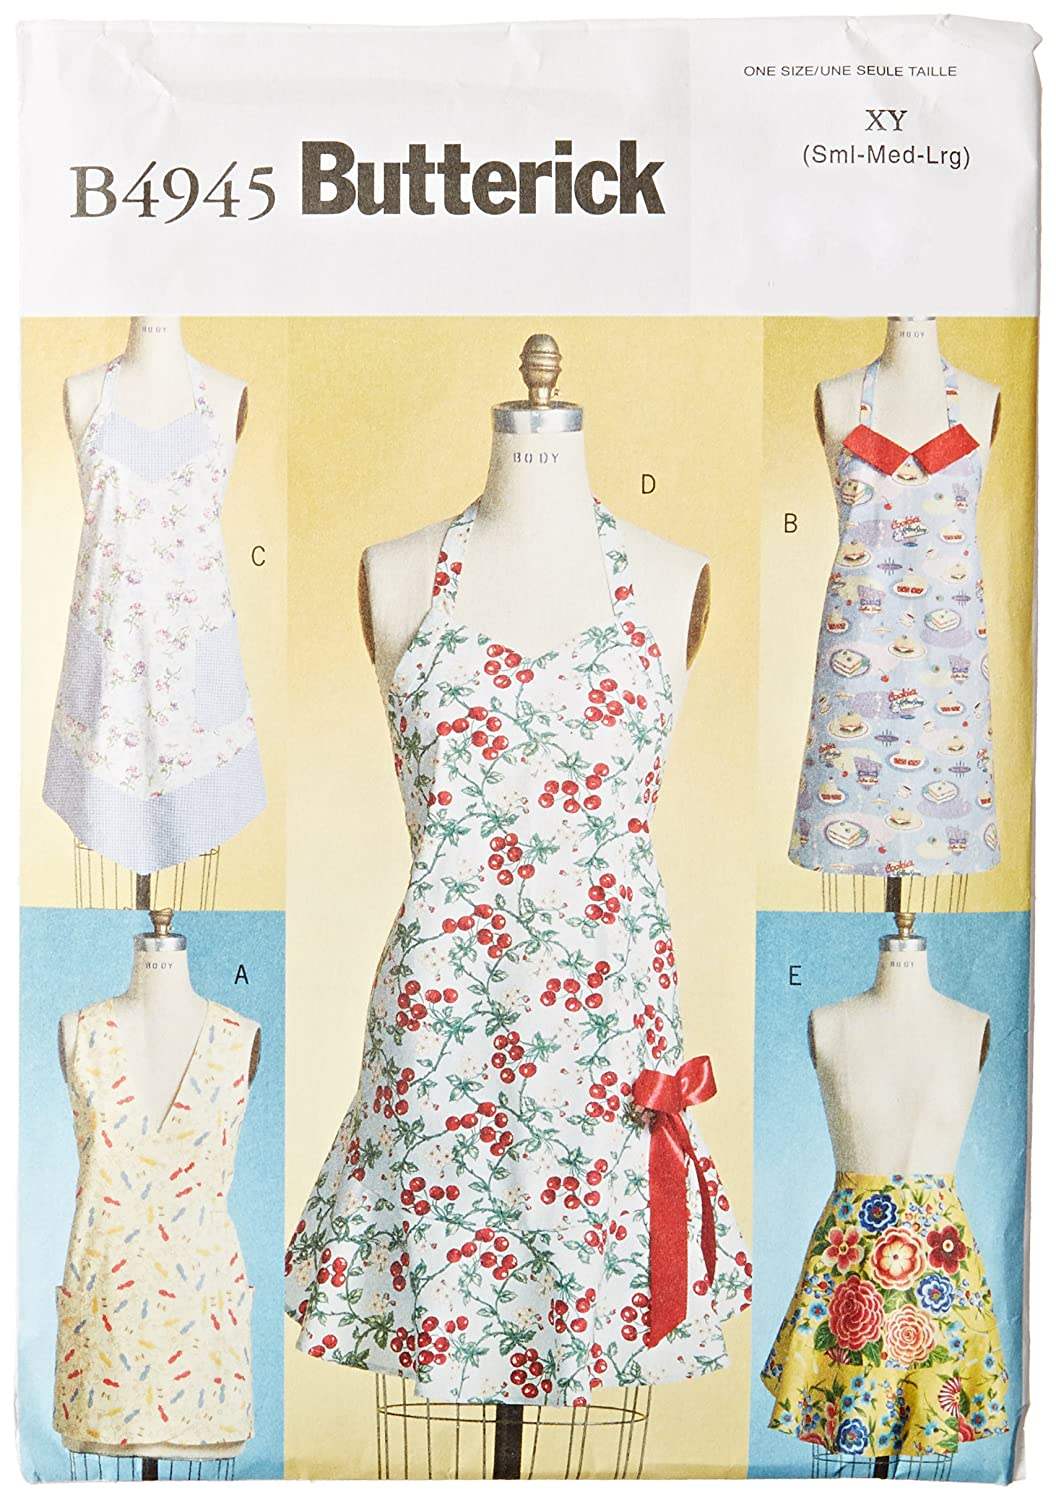 White Butterick Patterns B5474 All Sizes Pack of 1 Aprons